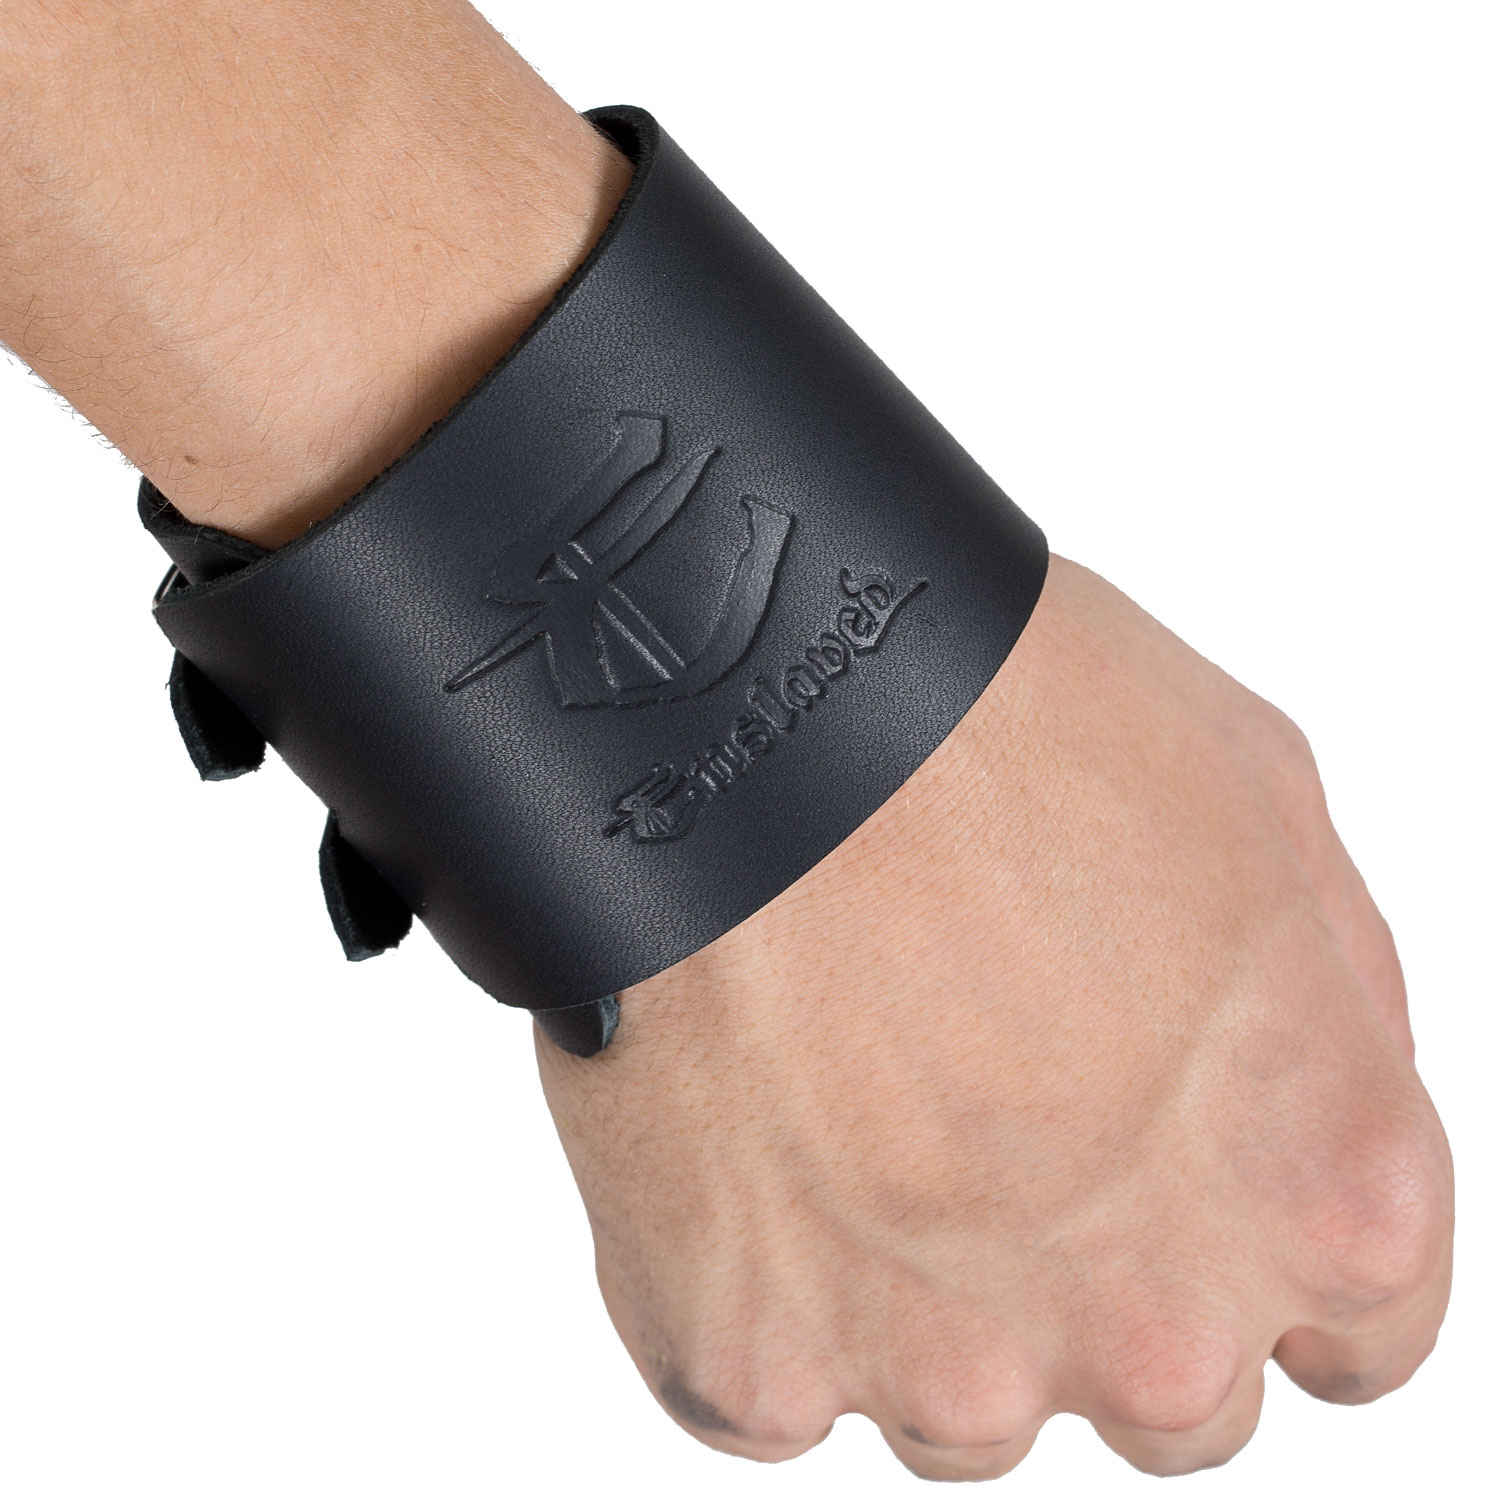 E Leather Wristband